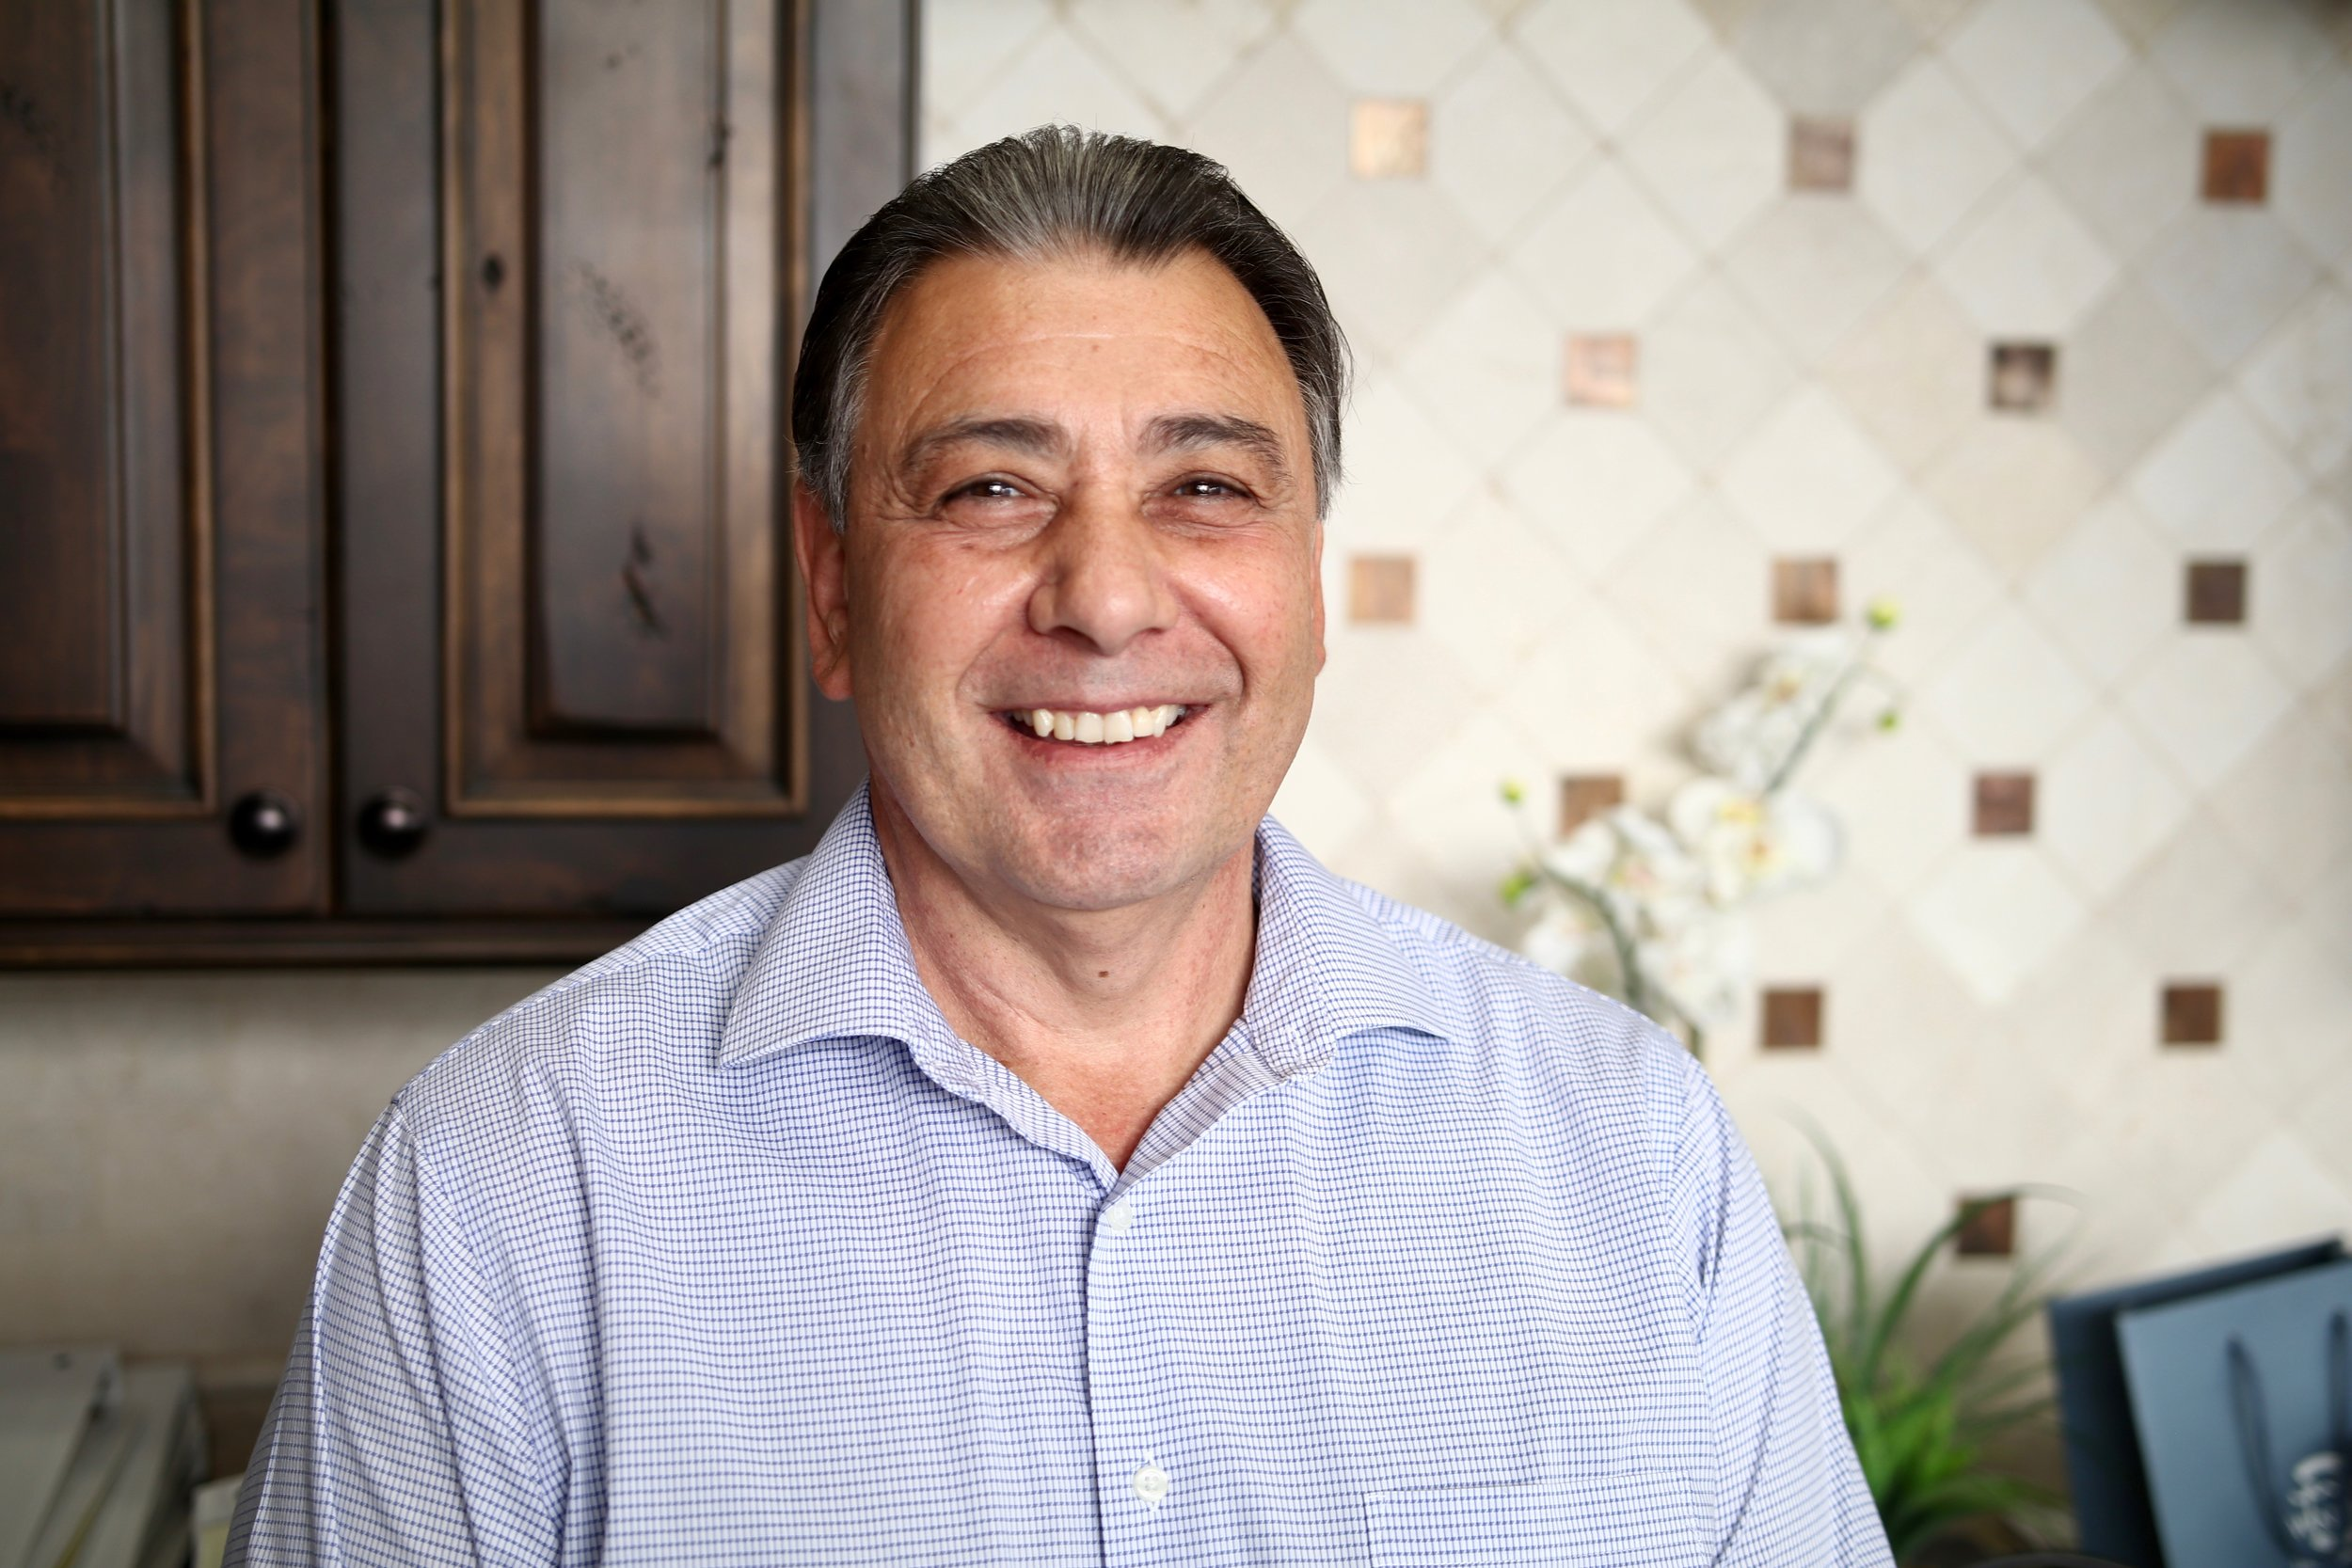 Anthony Hiera - Project Manager - March 2019